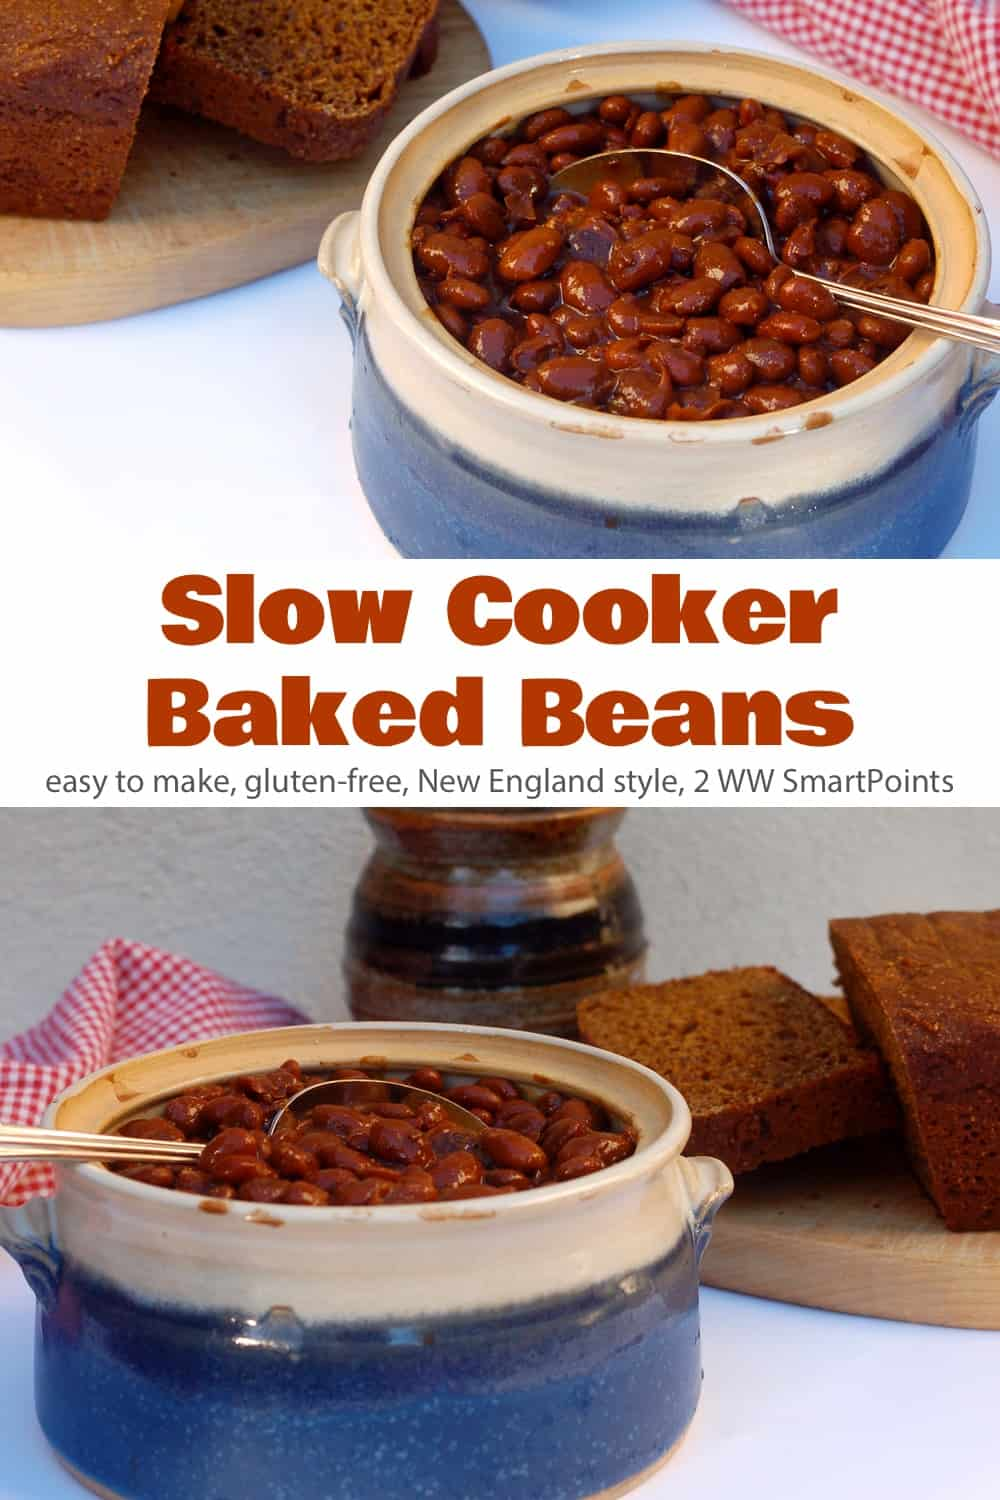 We enjoyed these New England Style Slow Cooker Baked Beans for supper with cole slaw, chicken apple sausages and still warm slow cooker whole wheat bread. And then I had them again on toast for breakfast! #slowcookerbakedbeans #beans #slowcooker #bakedbeans